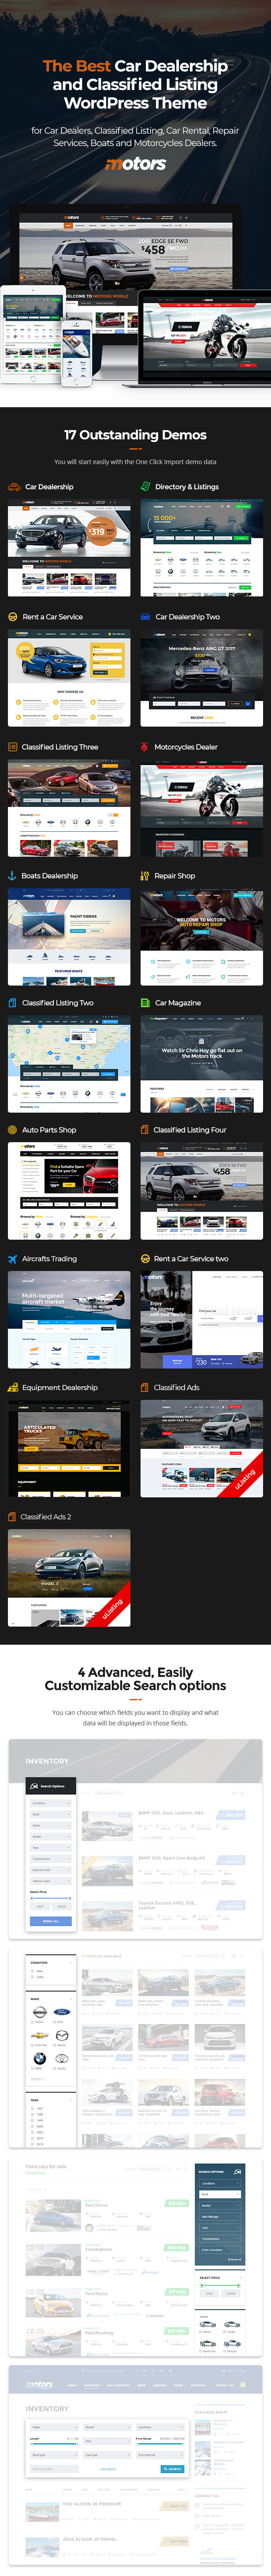 Motors ­- Automotive, Cars, Vehicle, Boat Dealership, Classifieds WordPress Theme